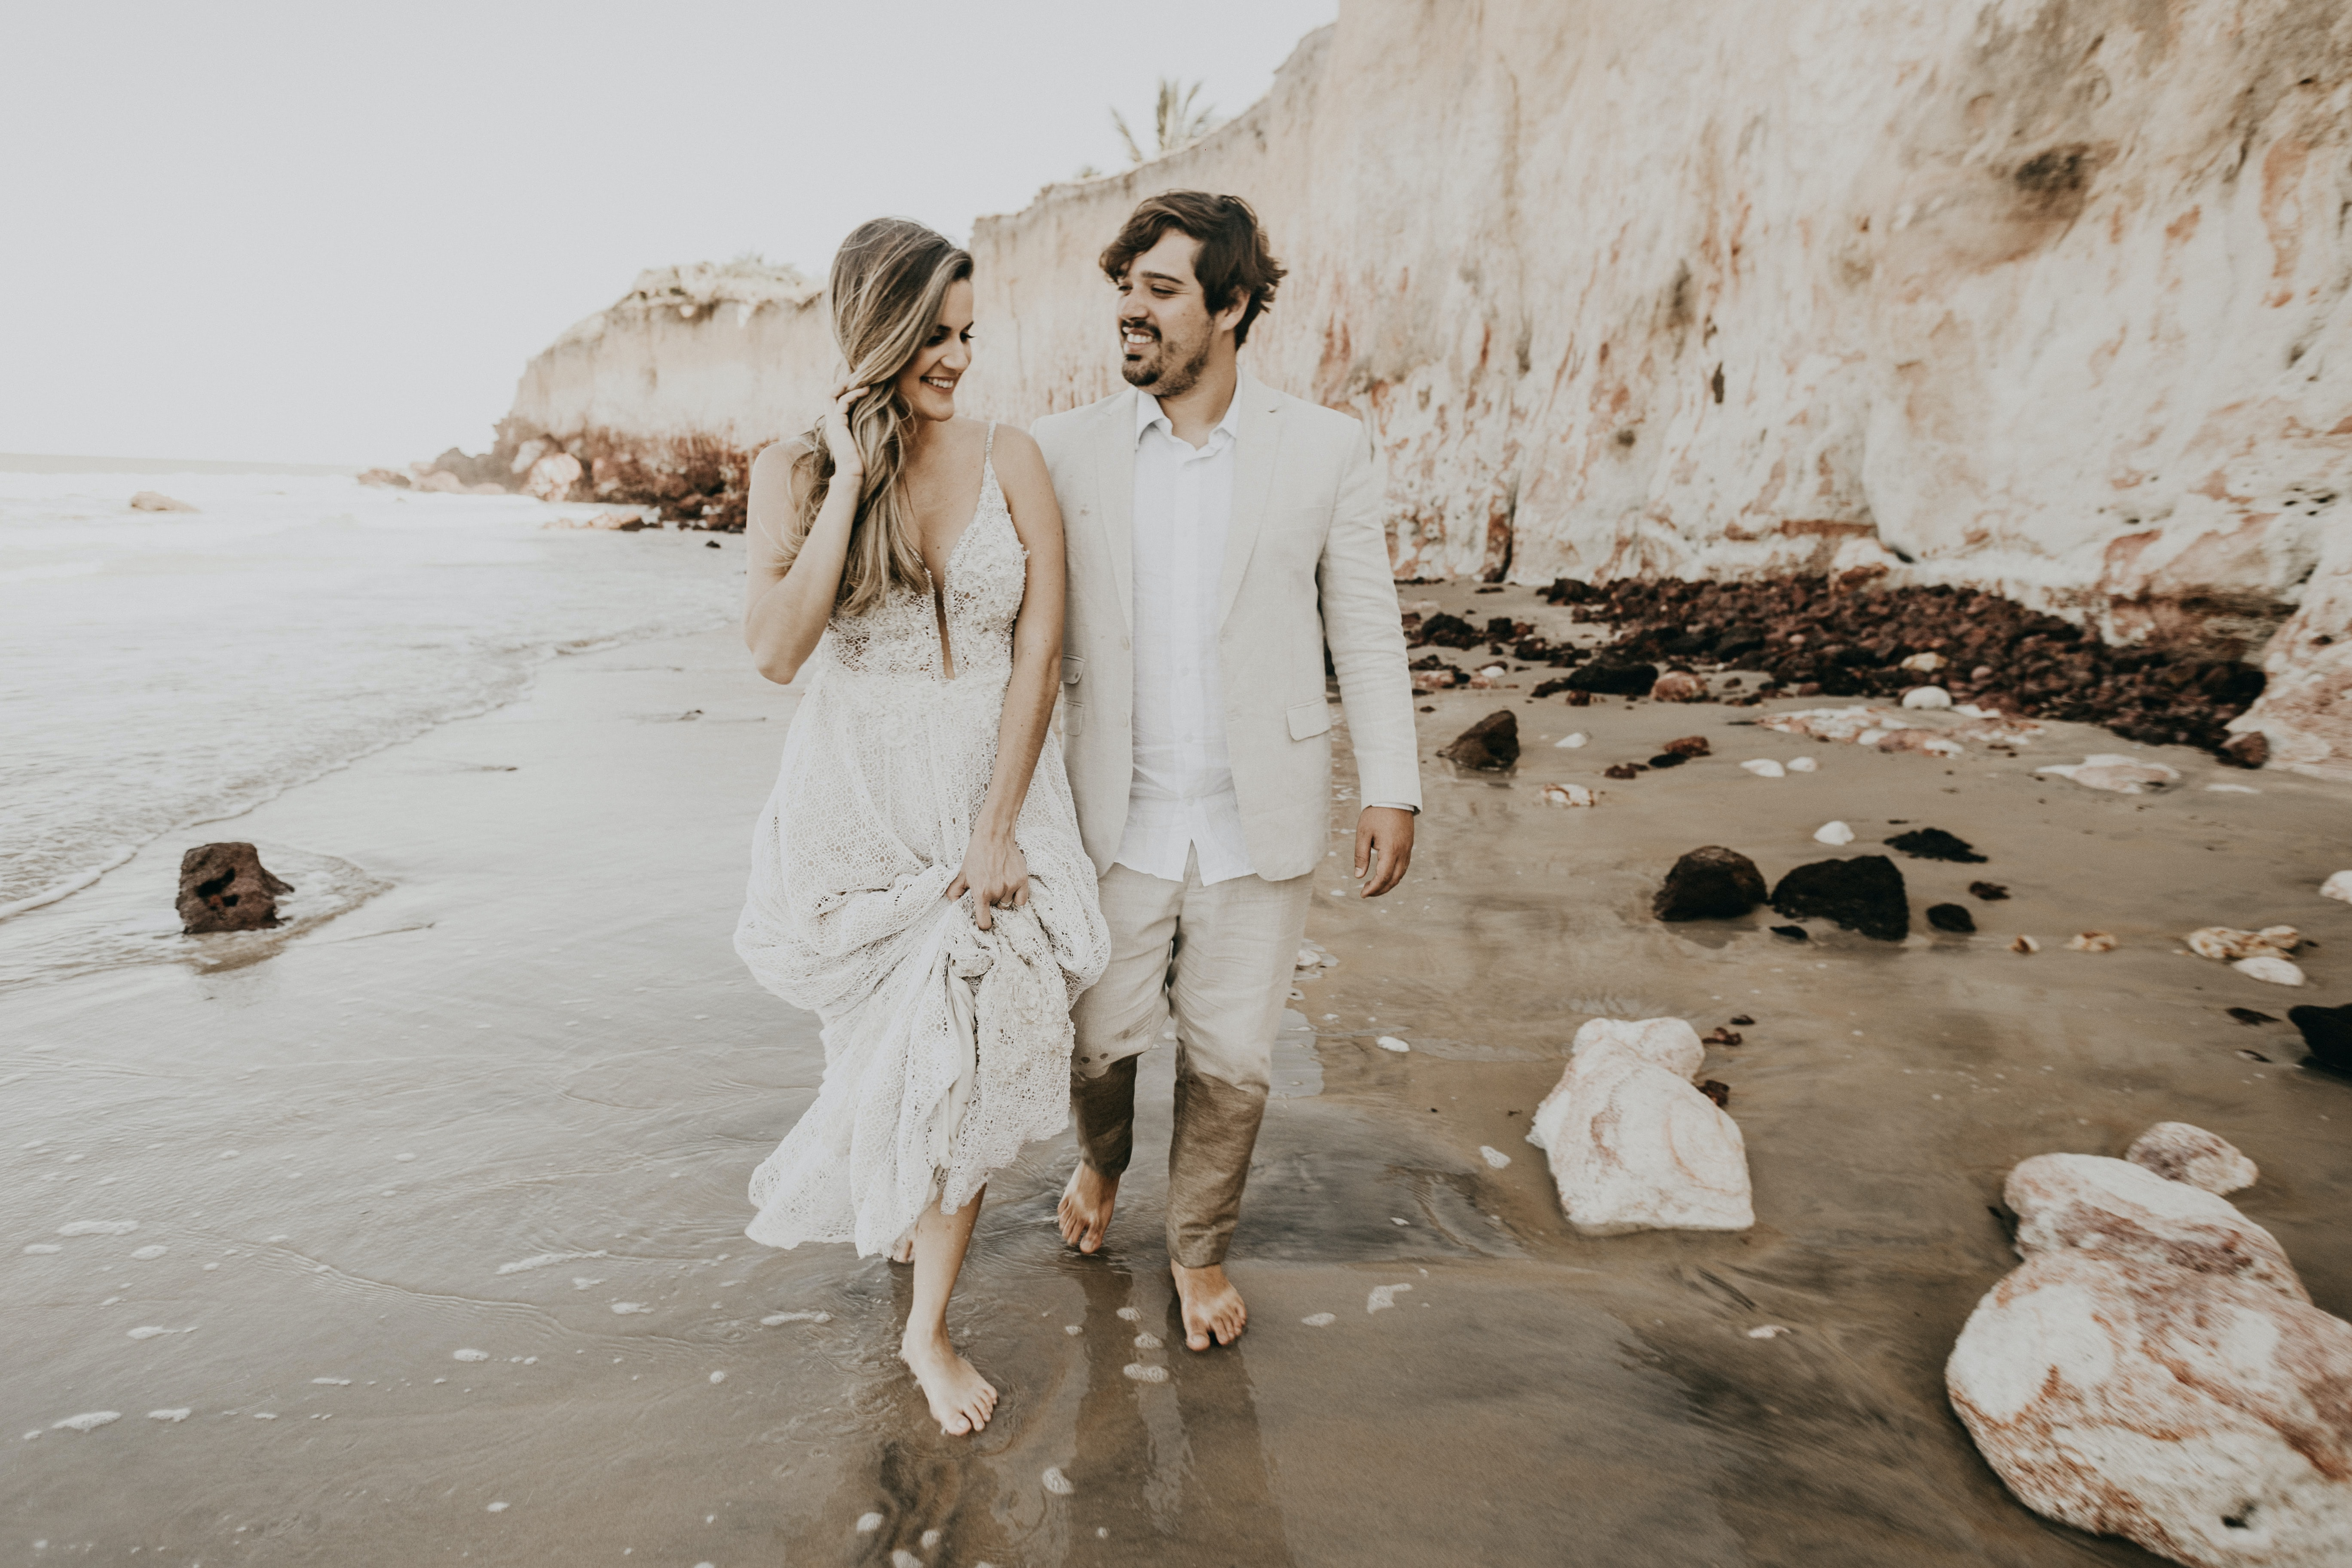 couple walking on the beach with trash during daytime